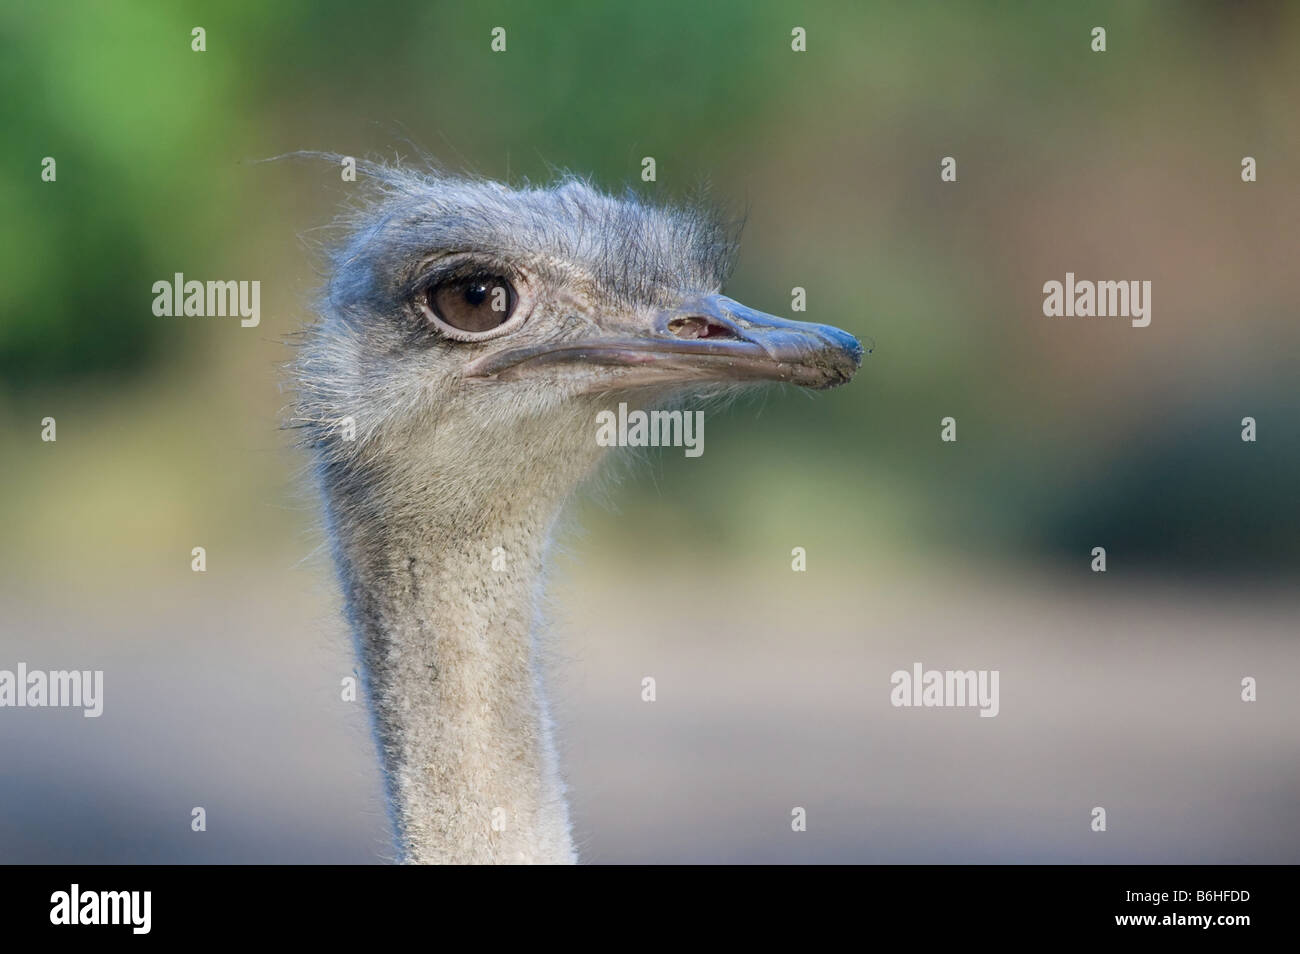 close up of an ostrich - Stock Image